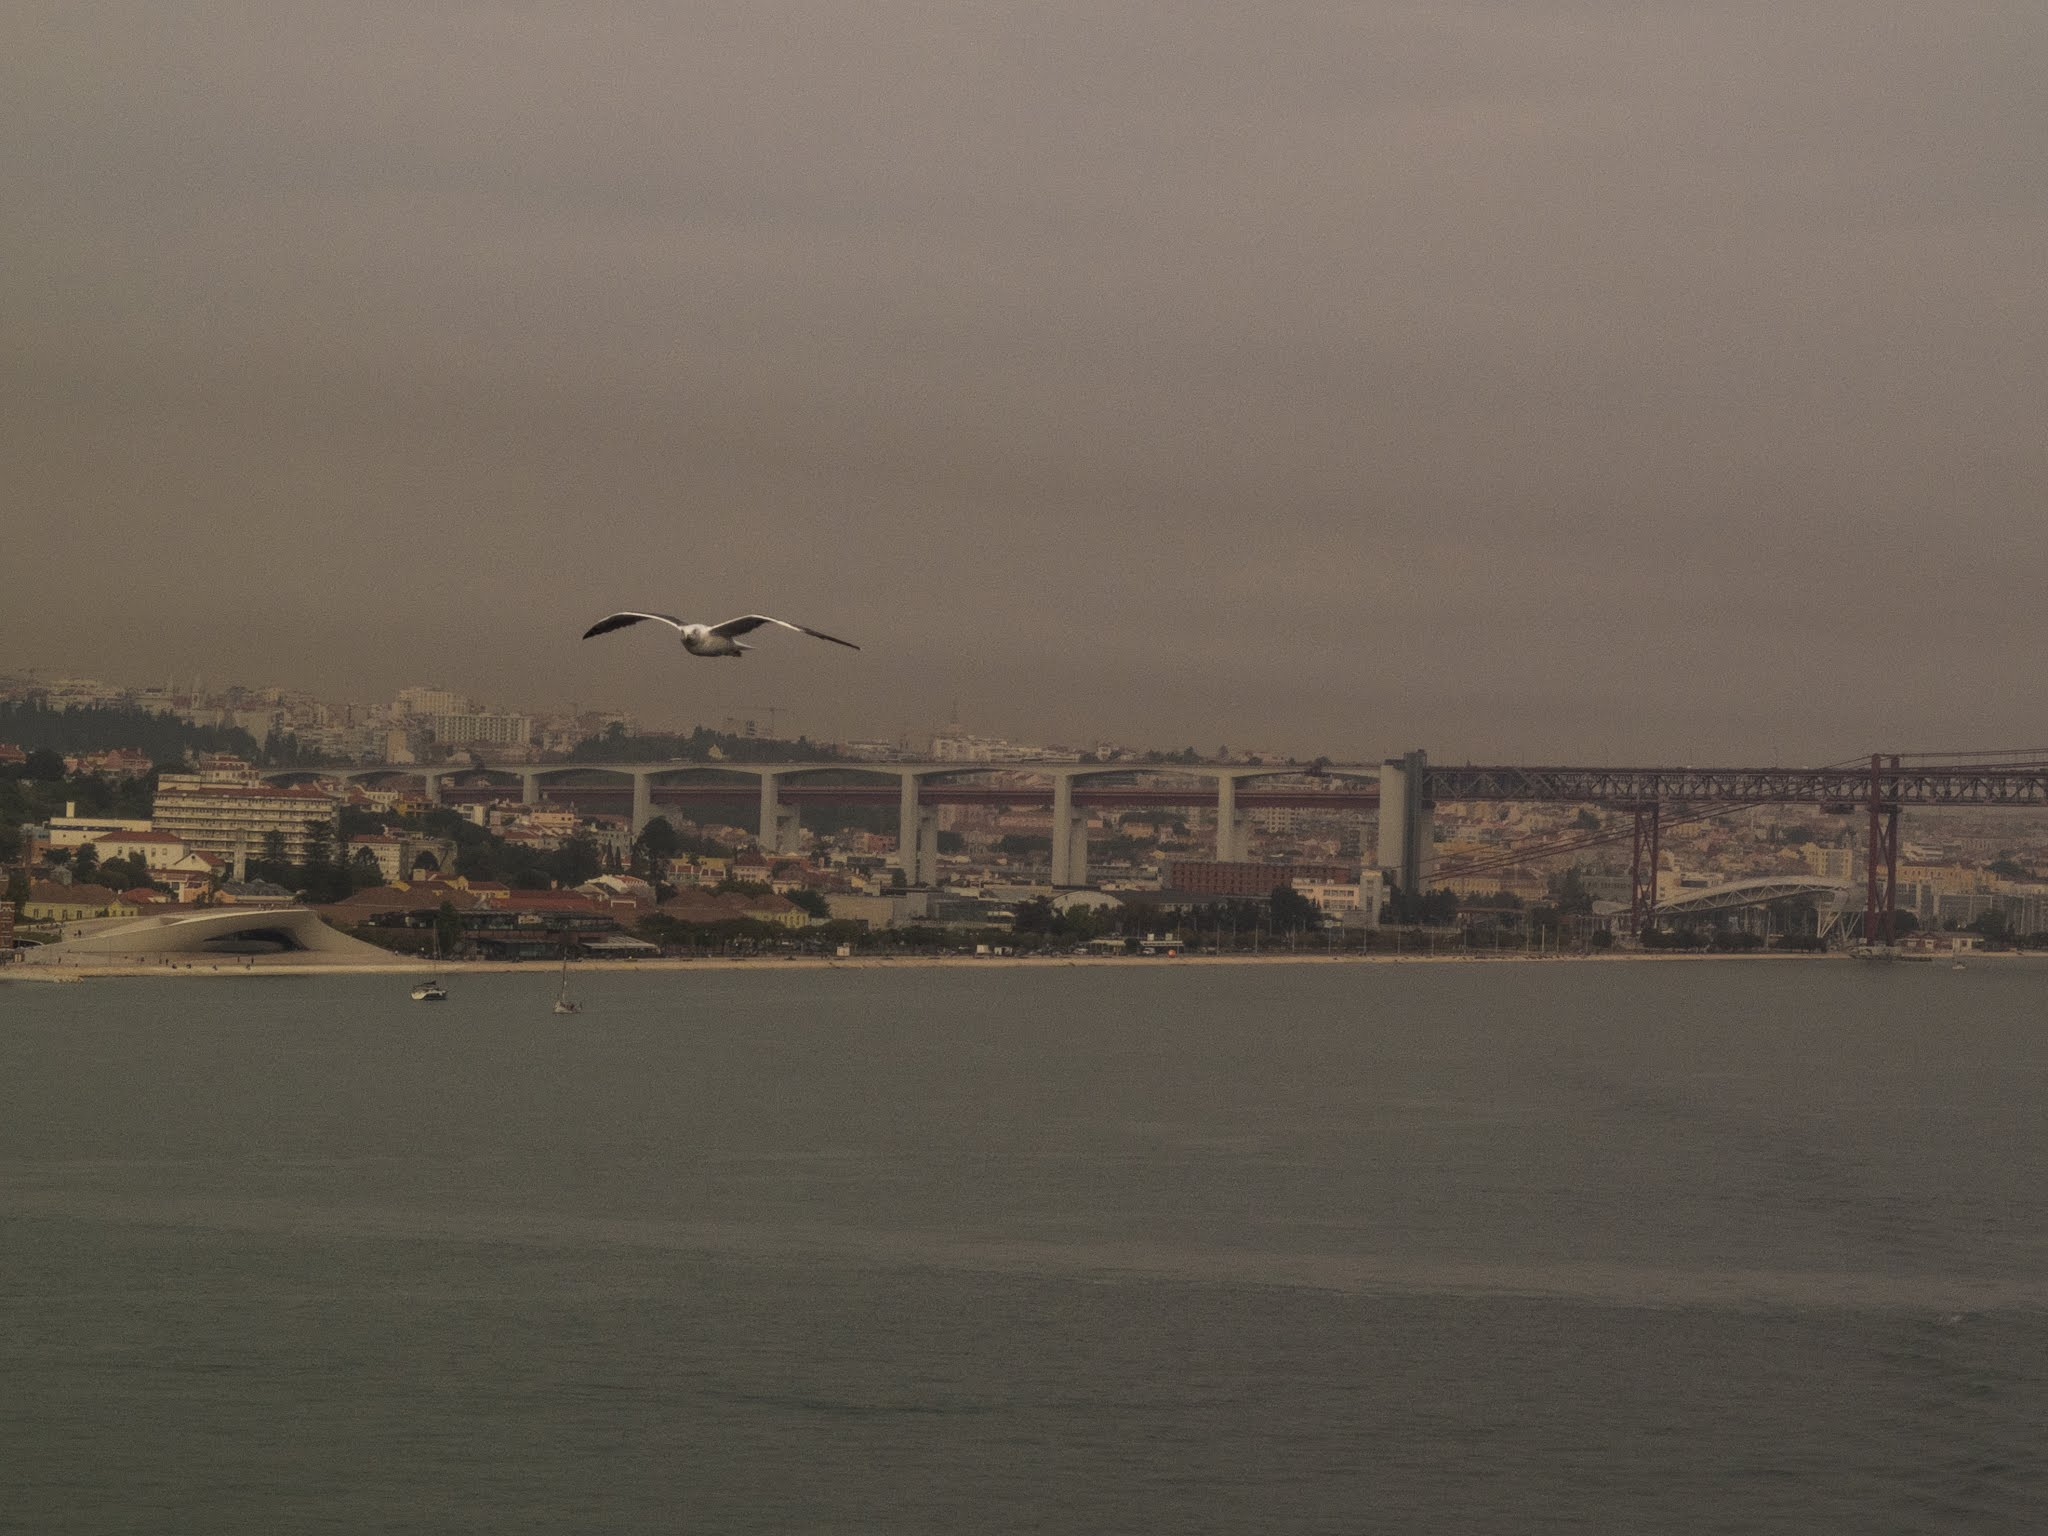 Seagull flying over the Tagus river in Lisbon, Portugal.